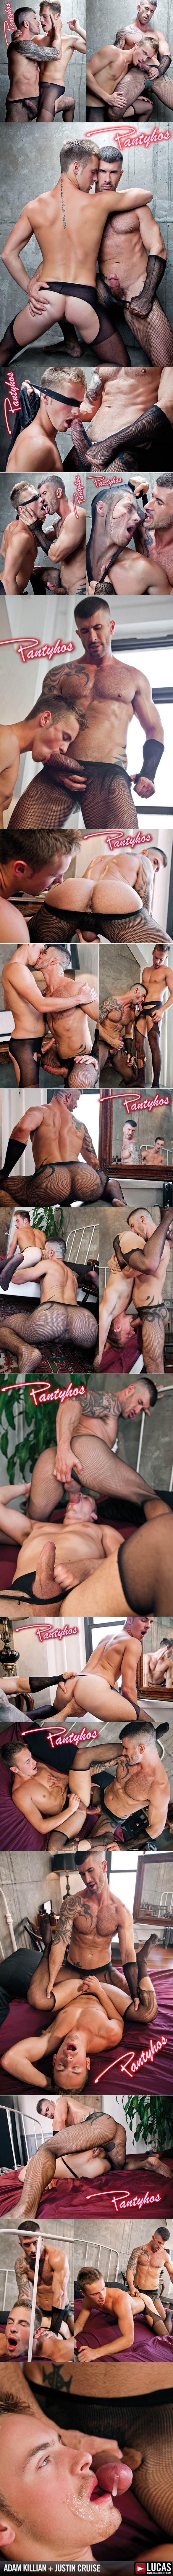 "Lucas Raunch: Justin Cruise slips into stockings for Adam Killian in ""Pantyhos"""